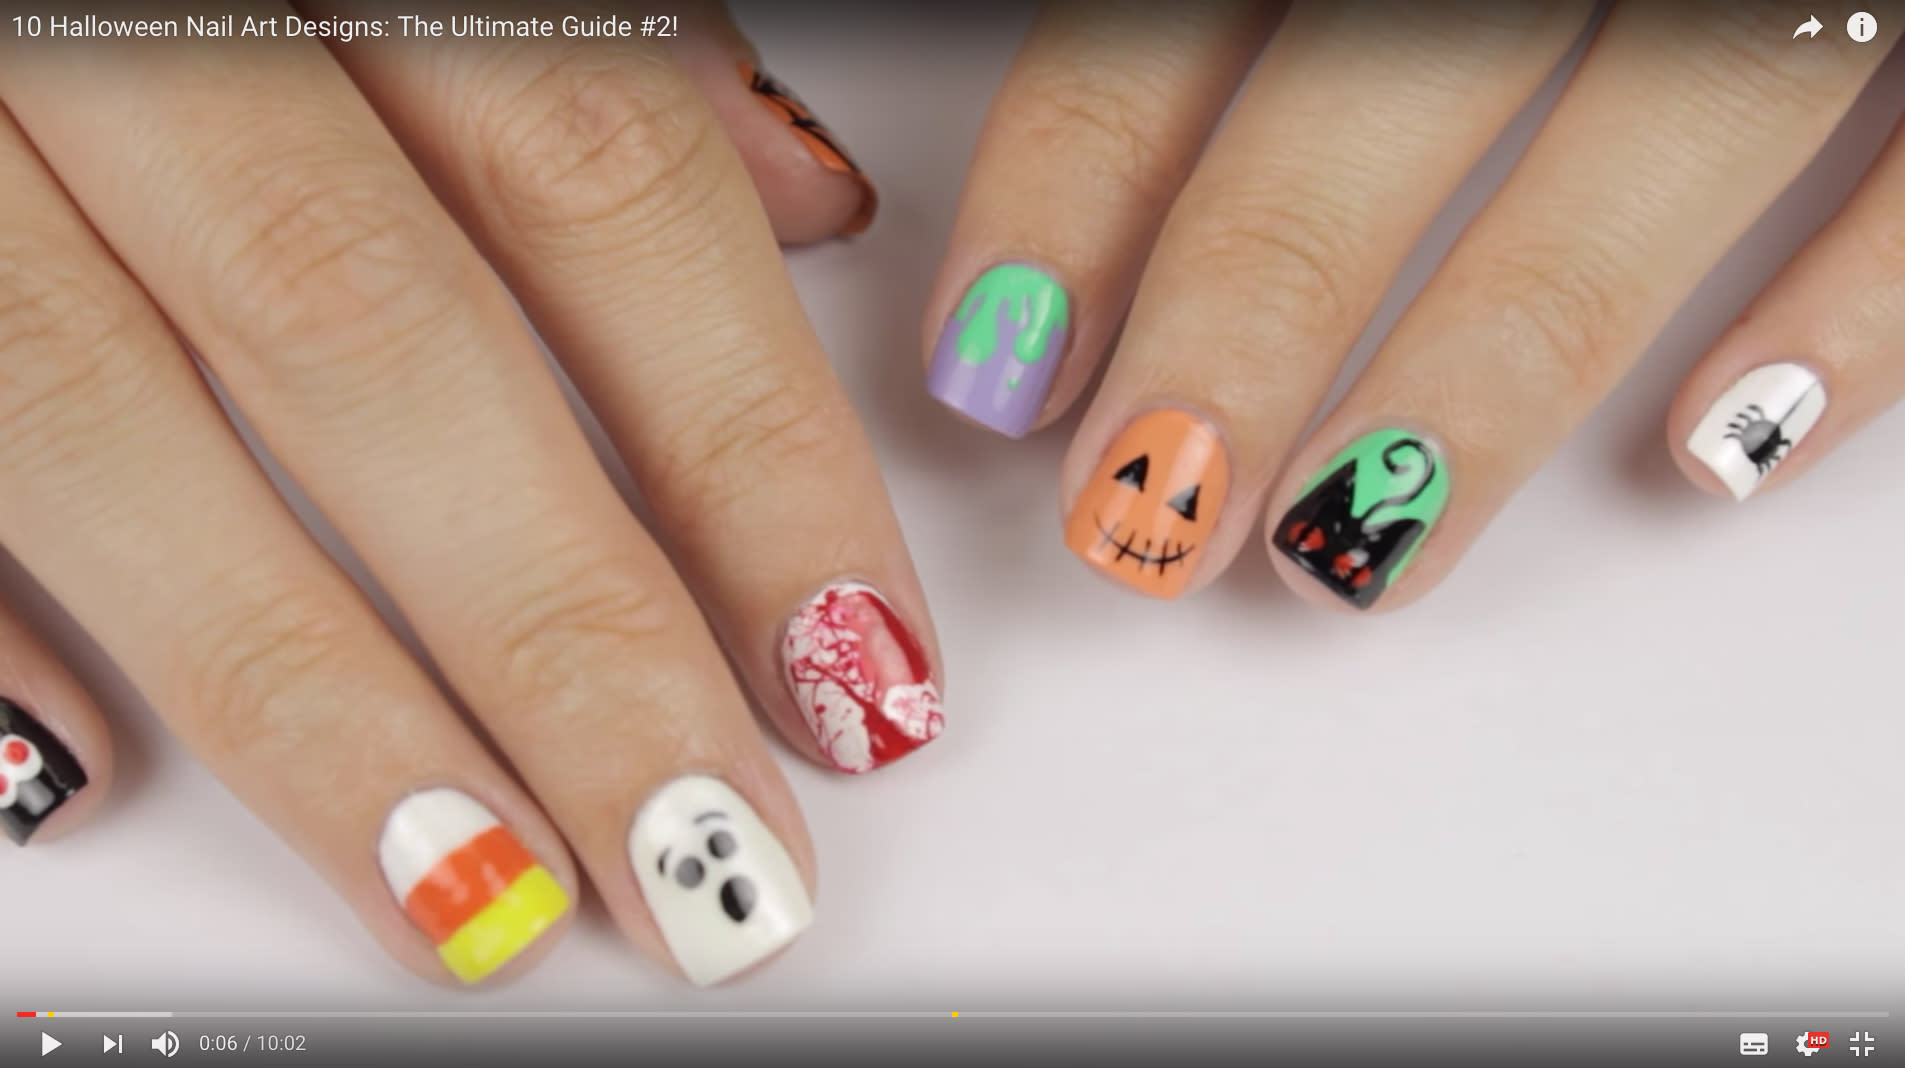 manicure ideas for a stylish halloween